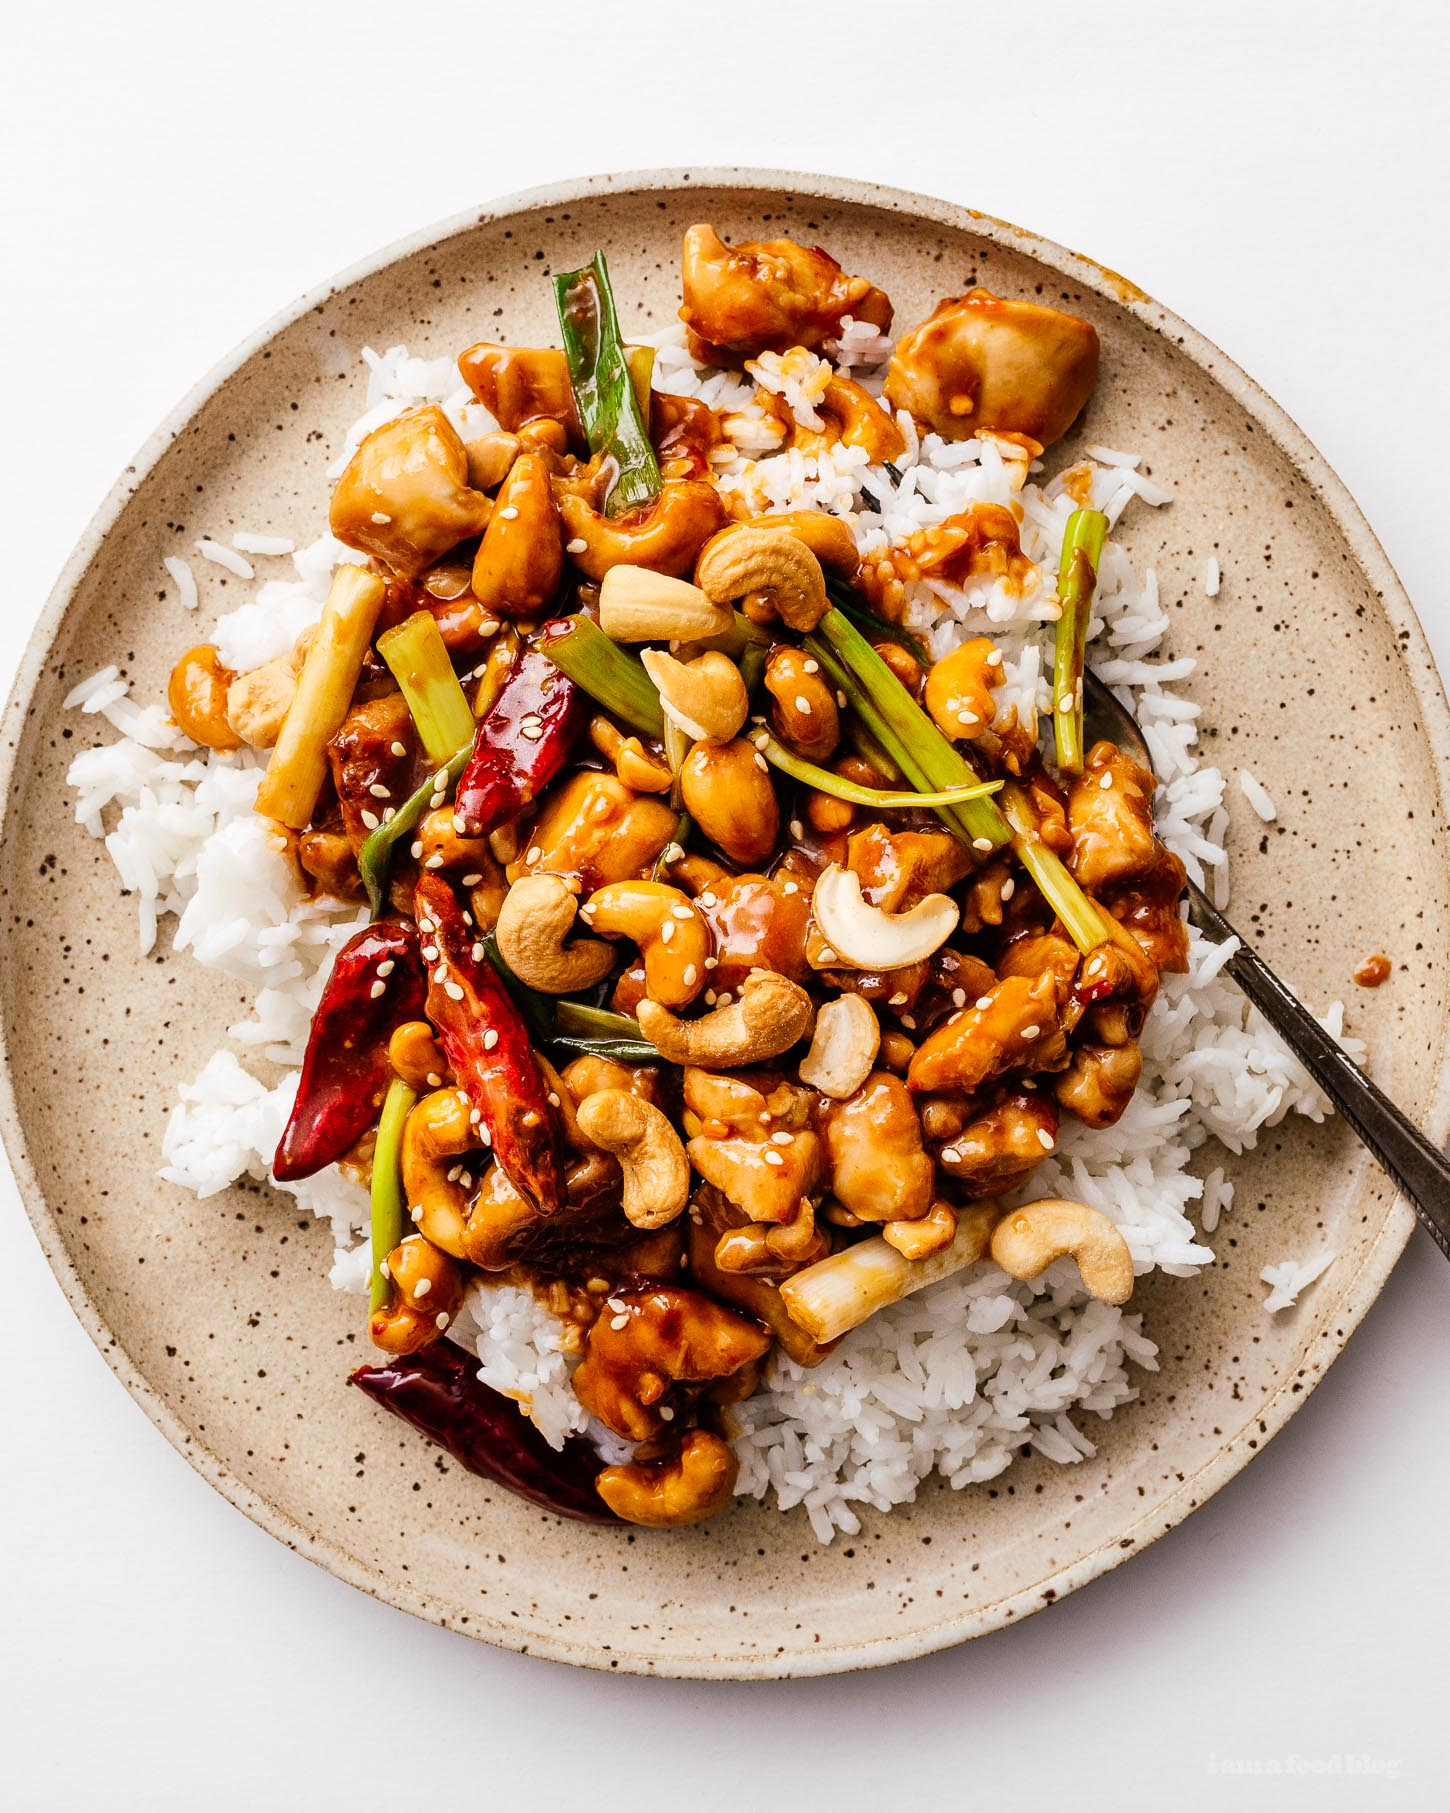 This spicy, tangy, sweet, and addictive better than takeout no peanut kung pao chicken stir fry recipe is here to brighten up your weeknight (or weekend) dinners! Highly addictive and super easy to make at home. #recipe #recipes #dinner #kungpao #kungpaorecipe #kungpaochicken #kungpaochickenrecipe #takeout #takeoutrecipes #betterthantakeout #stirfry #stirfryrecipes